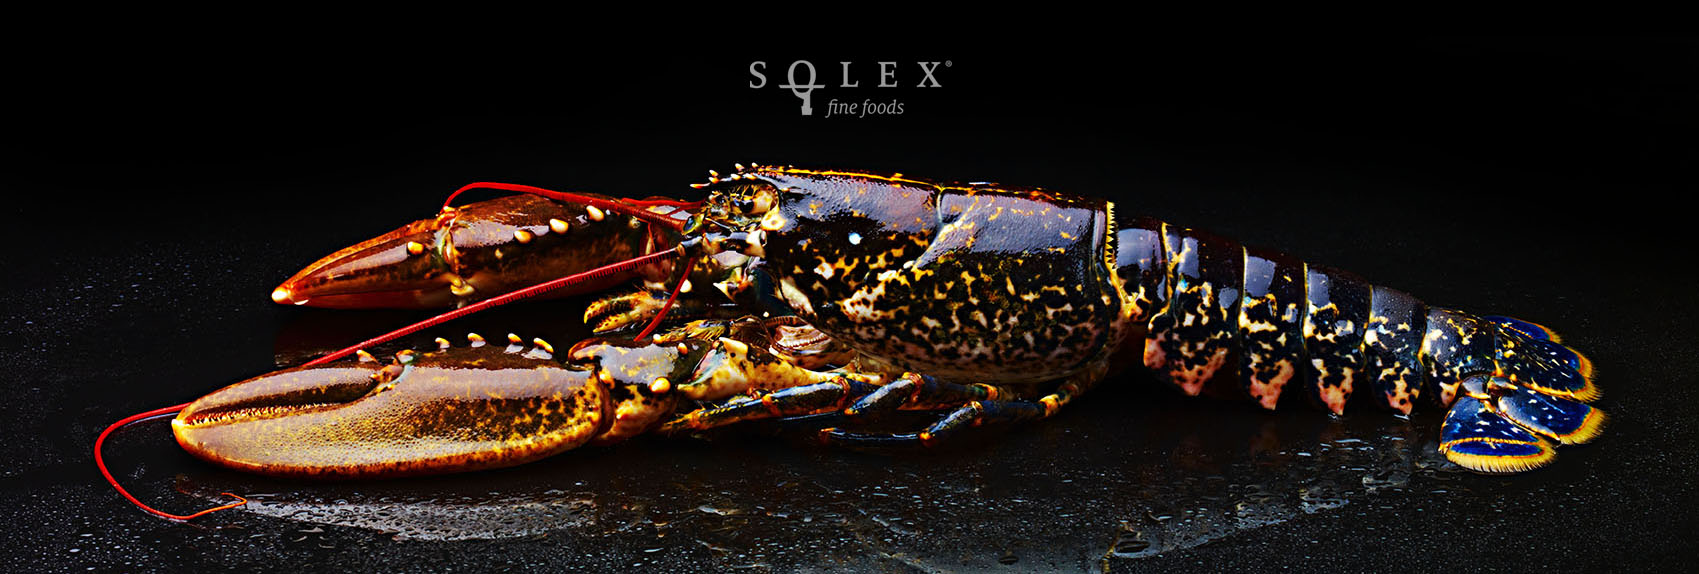 SOLEX412_BlueLobster-home.jpg